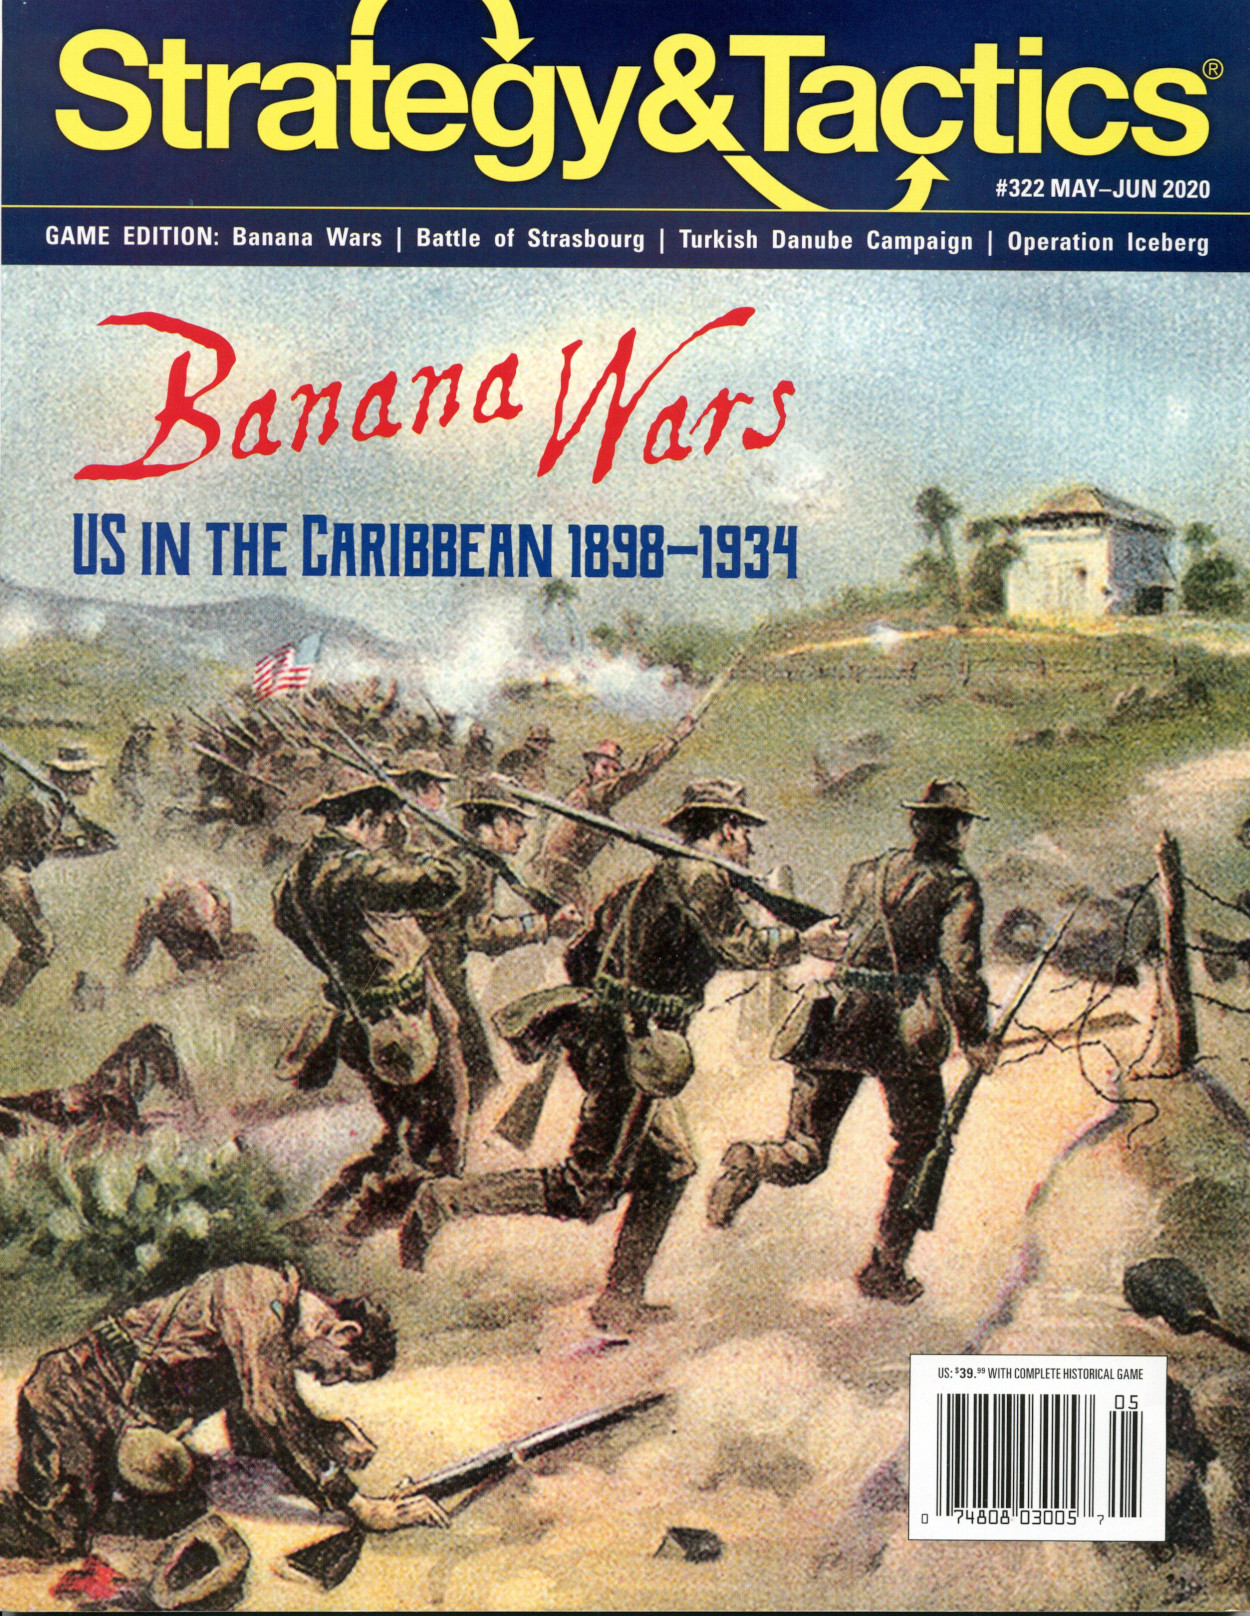 Strategy & Tactics - Game - 322 - Banana Wars - US in the Caribbean 1898 - 1934